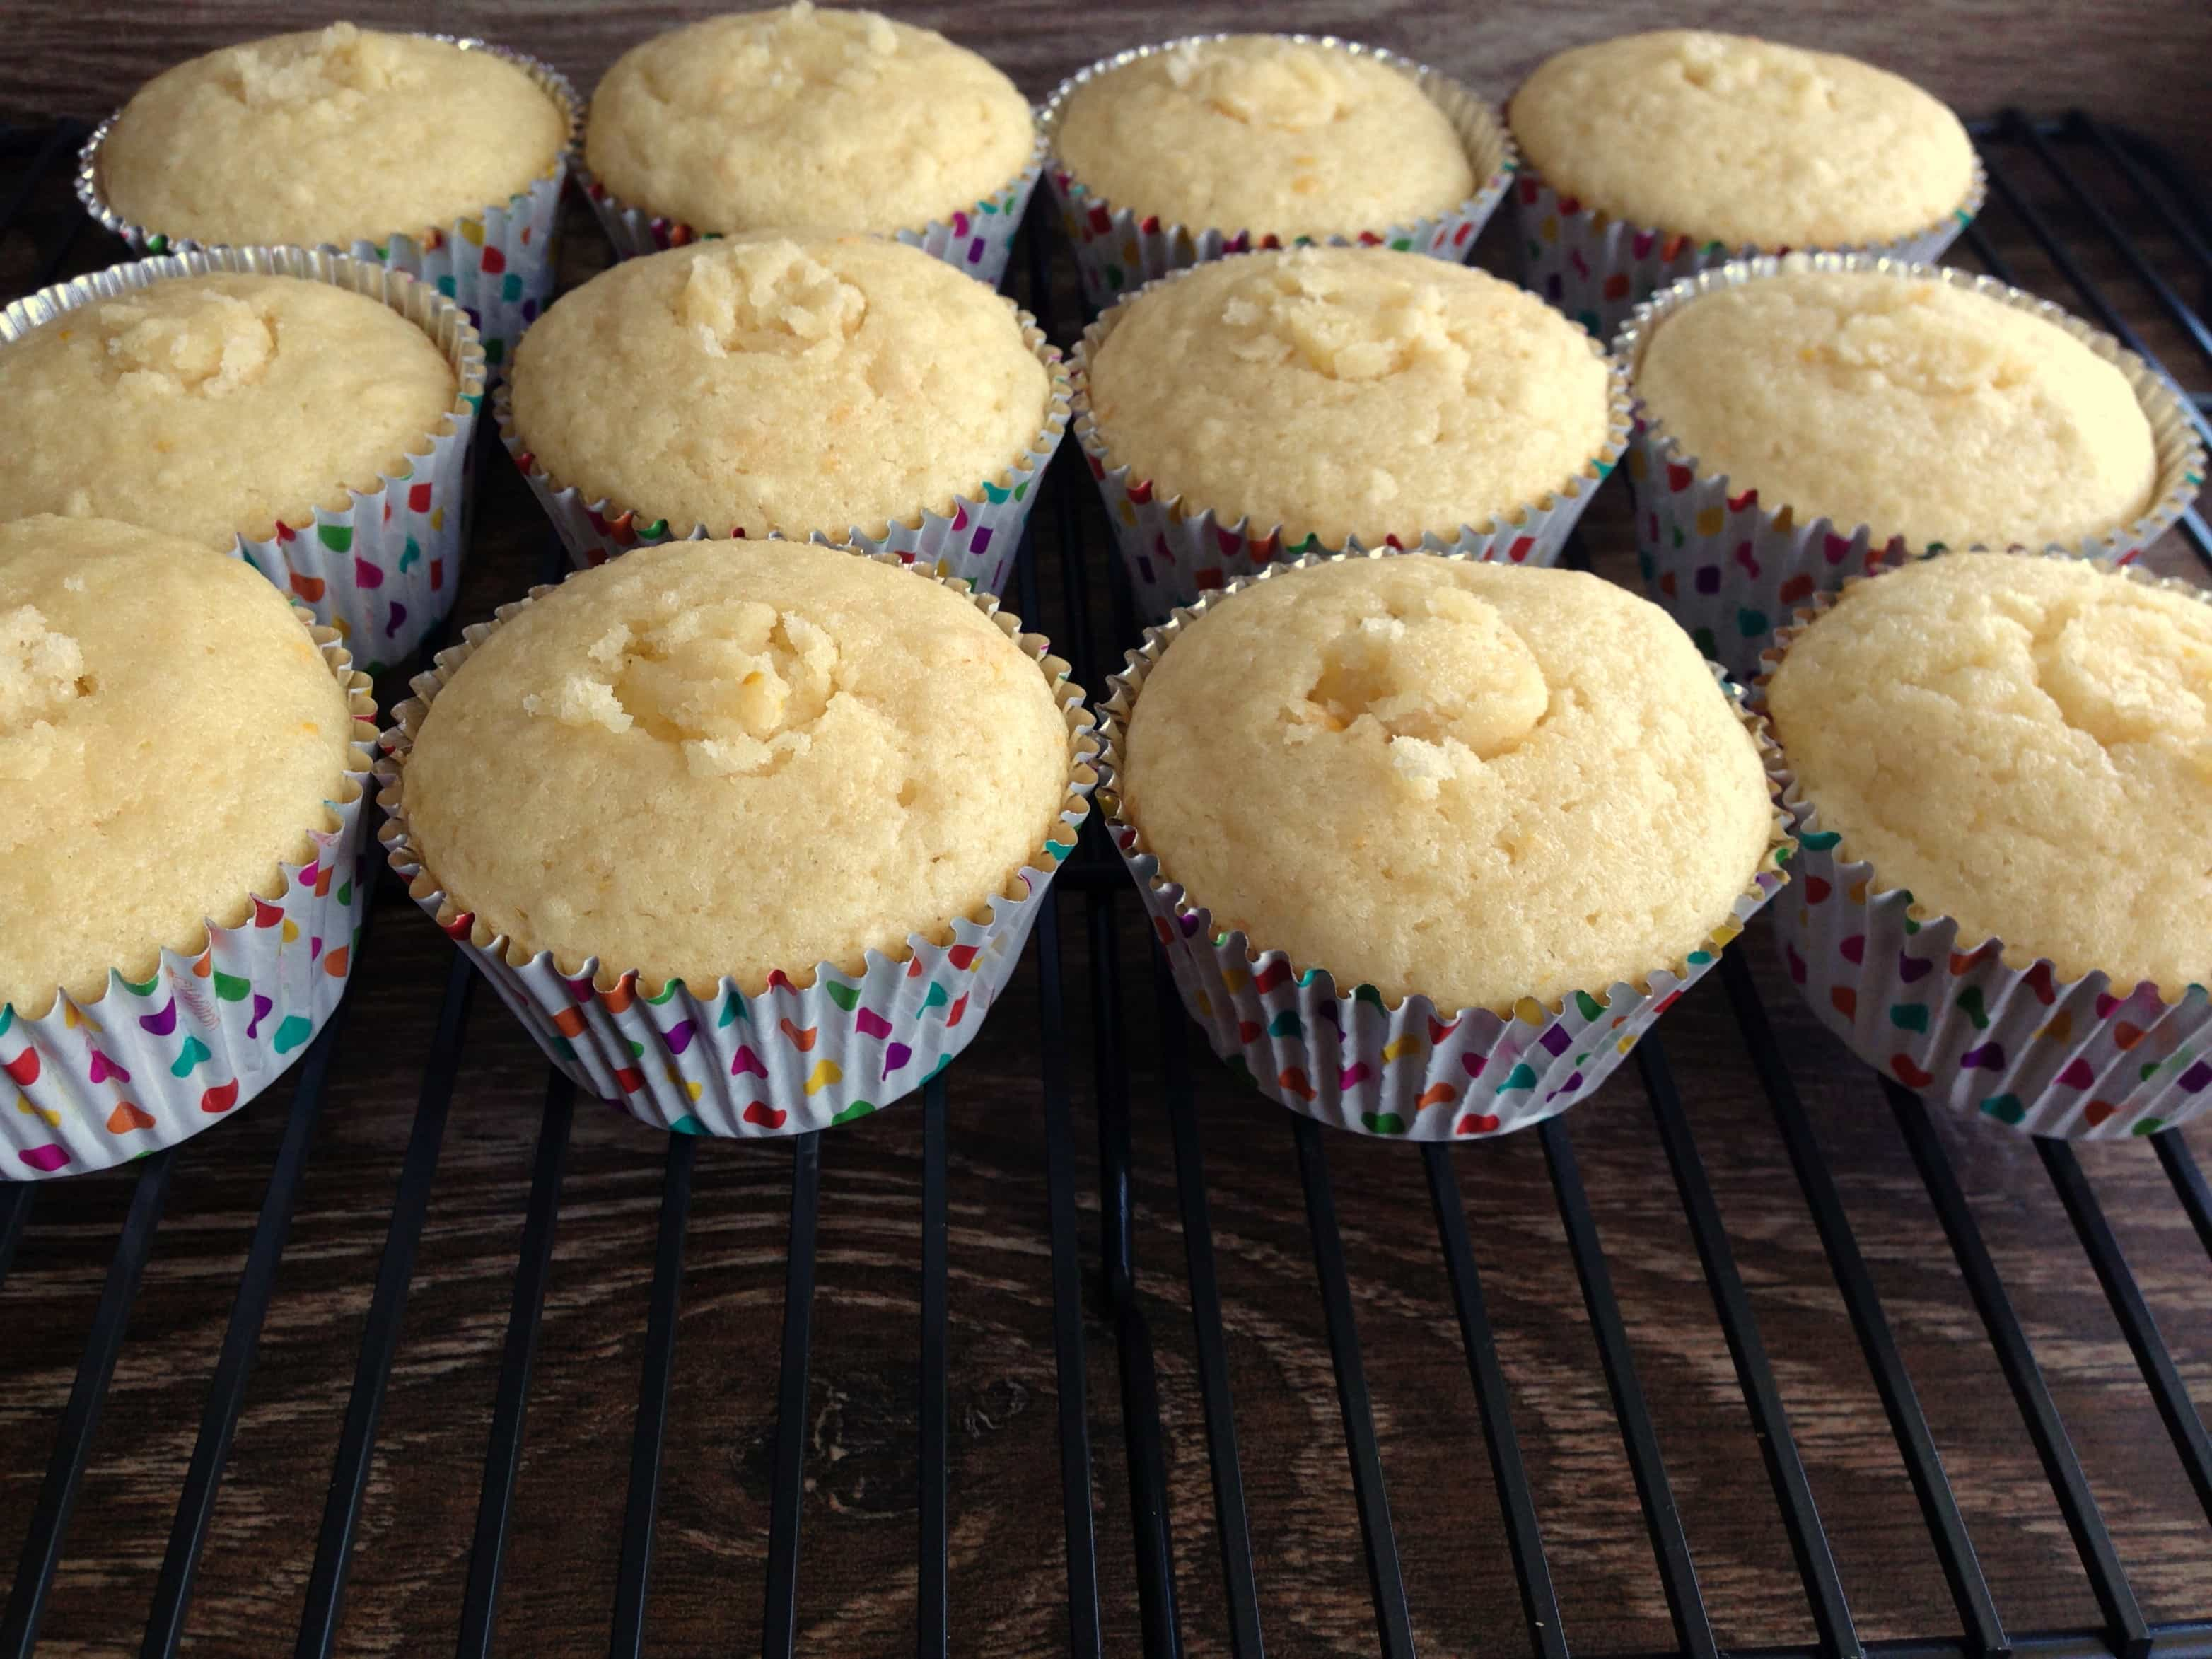 Tops placed back in the centers of the cupcakes on top of the filling.